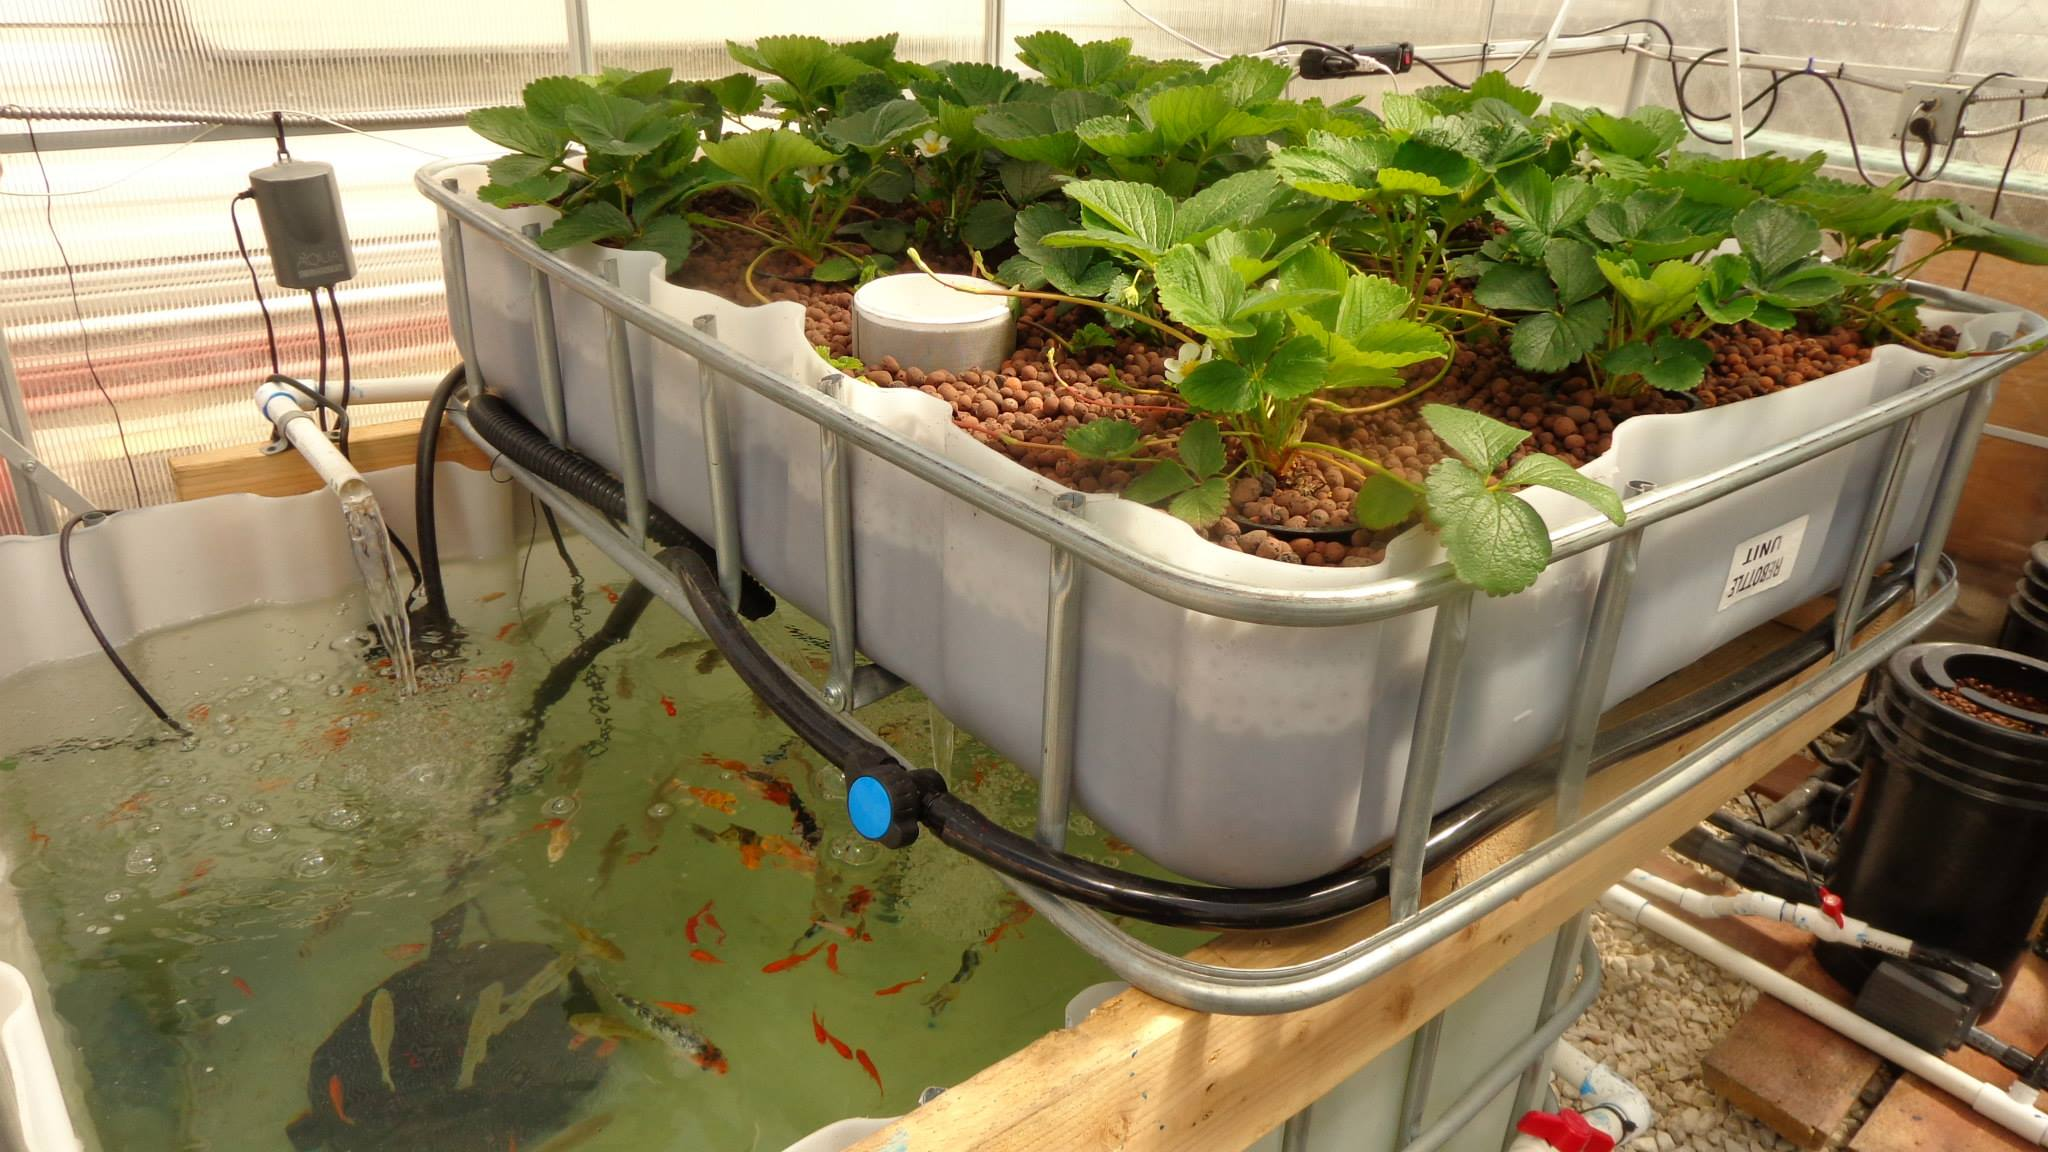 High crop production aquaponics grozinegrozine for Fish used in aquaponics